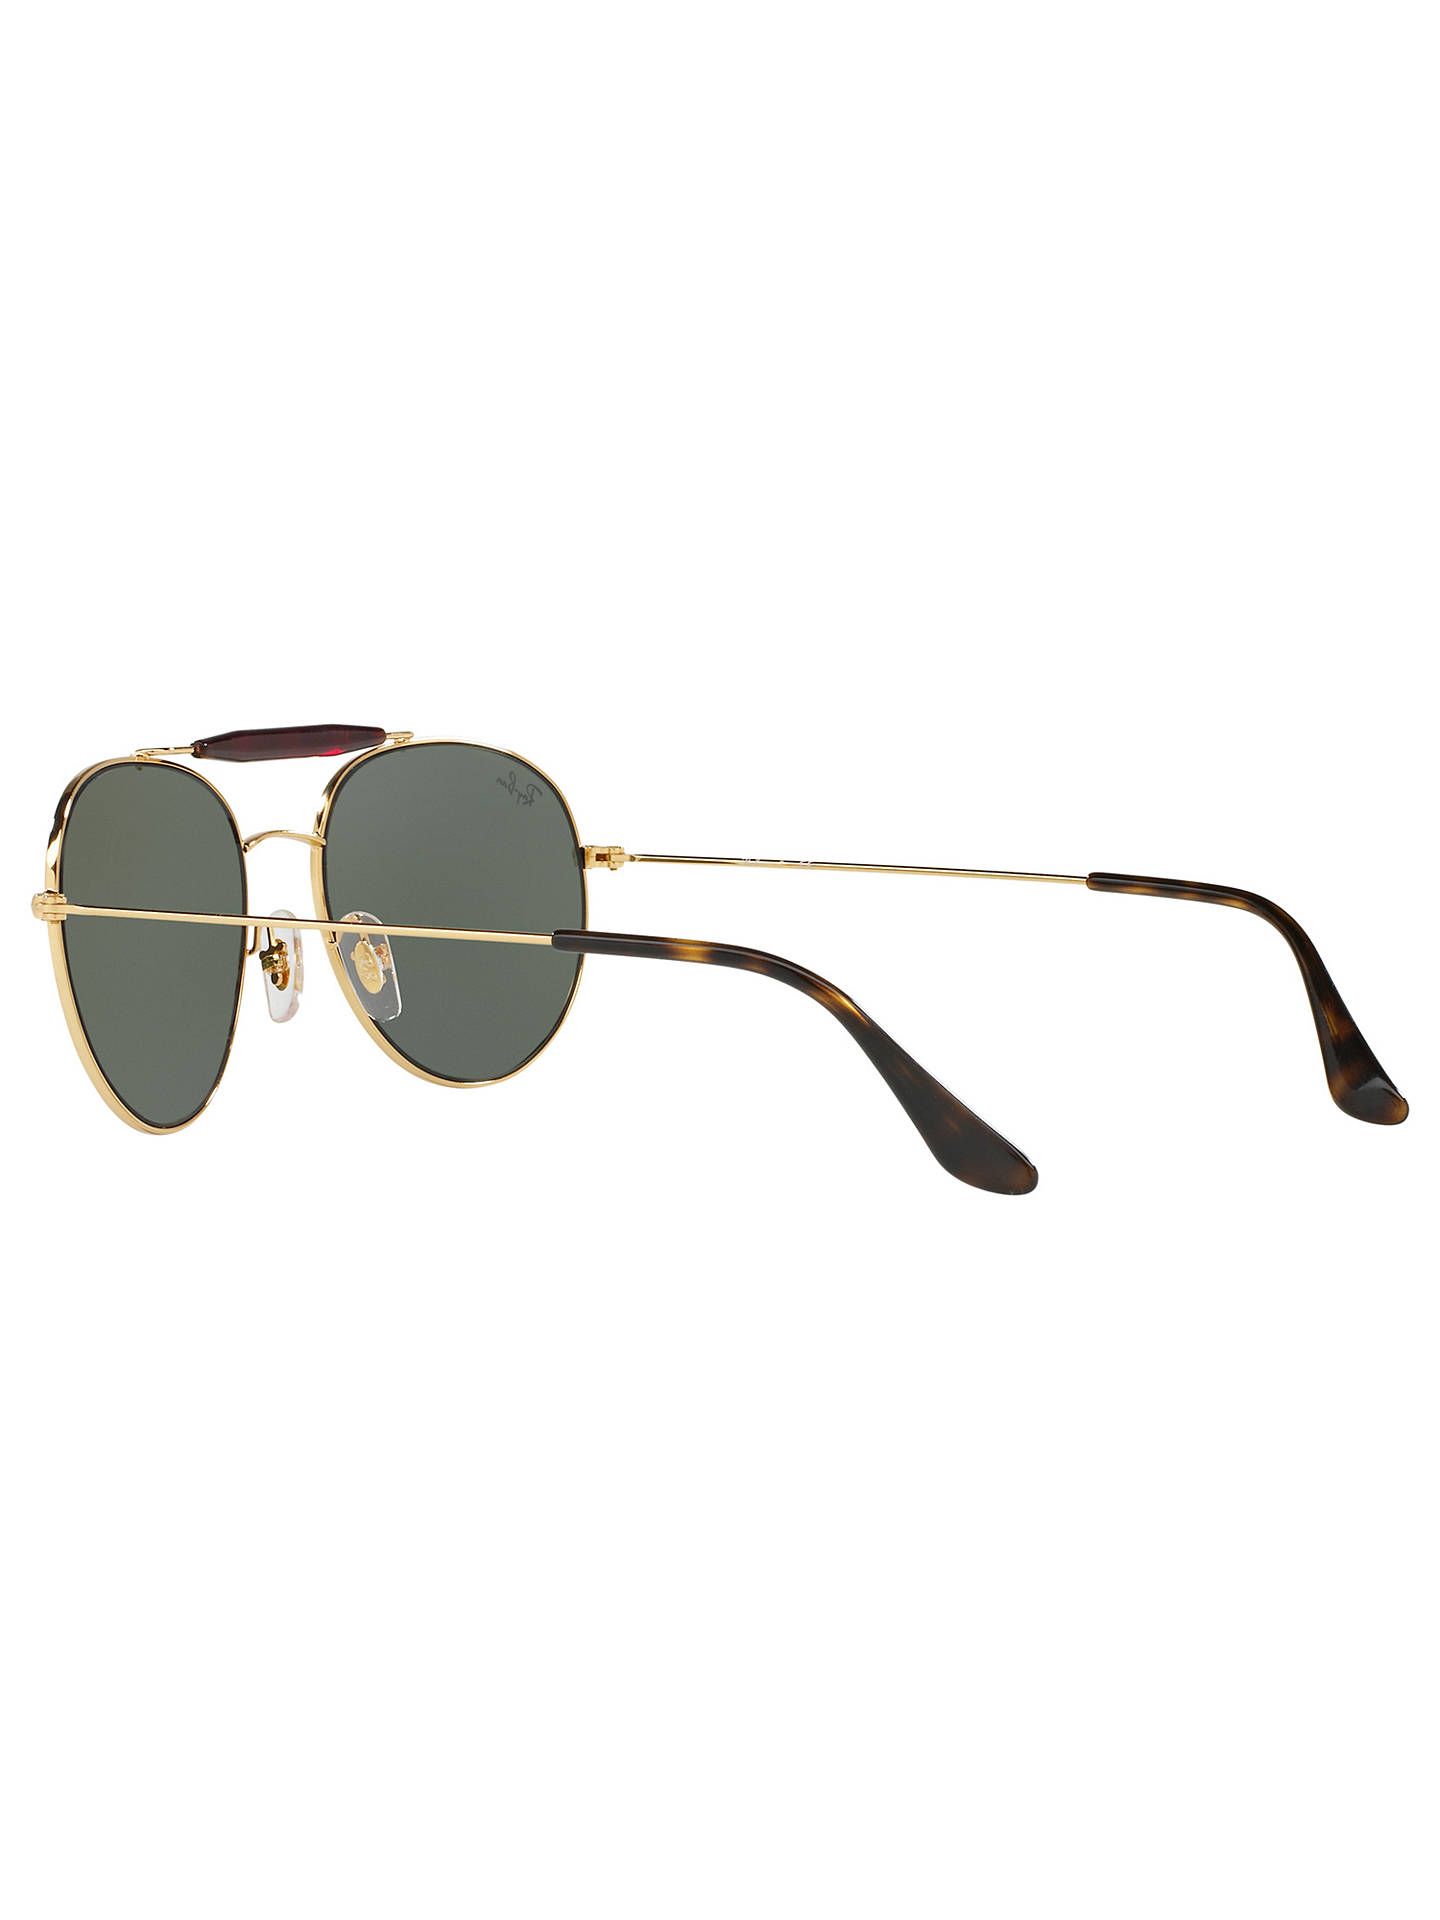 Buy Ray-Ban RB3540 Oval Sunglasses, Gold/Green Online at johnlewis.com